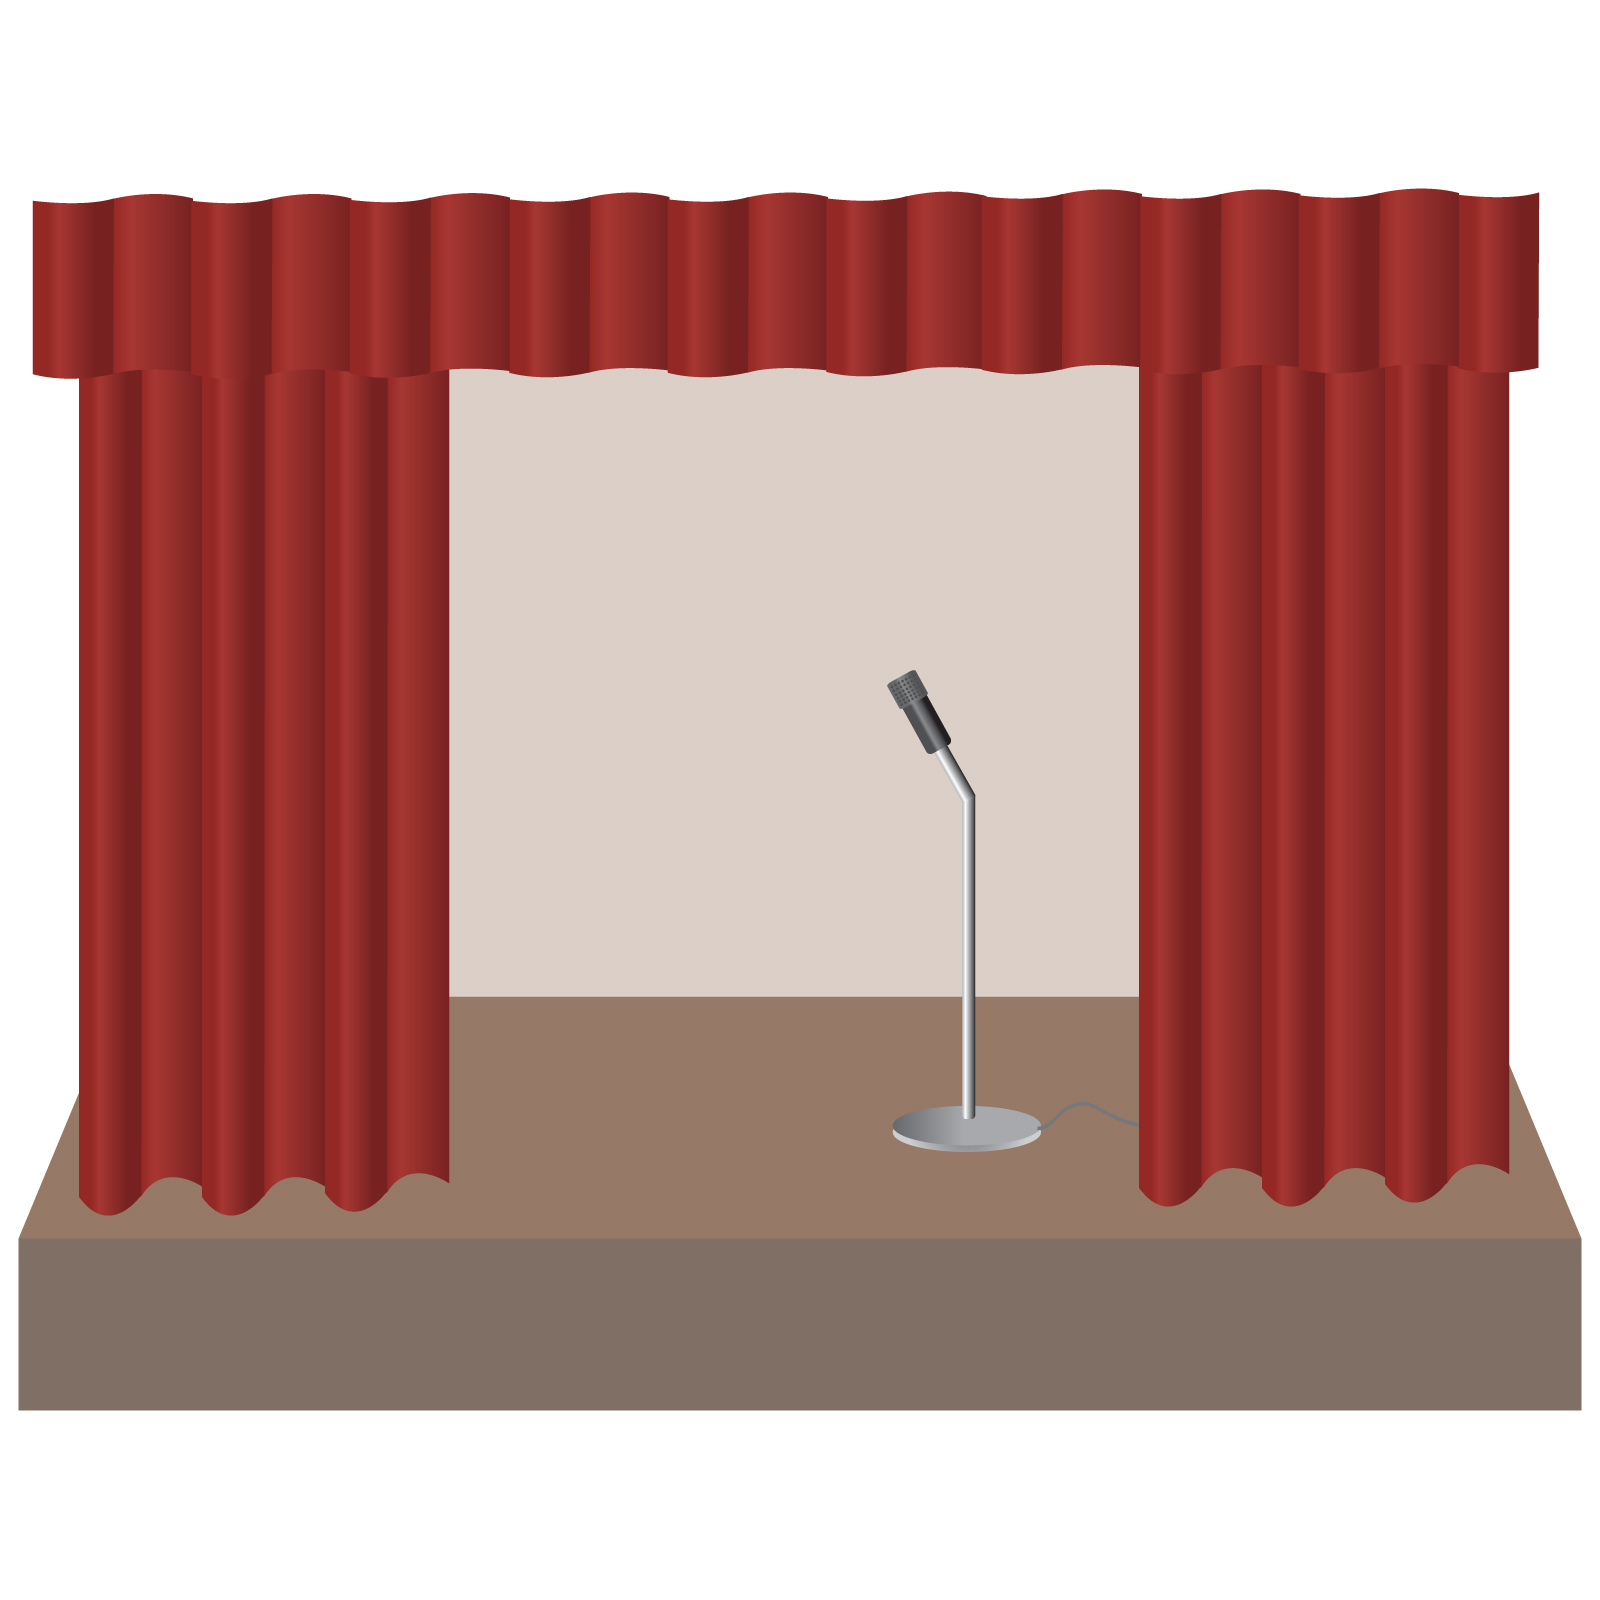 Free Stage Cliparts, Download Free Clip Art, Free Clip Art.